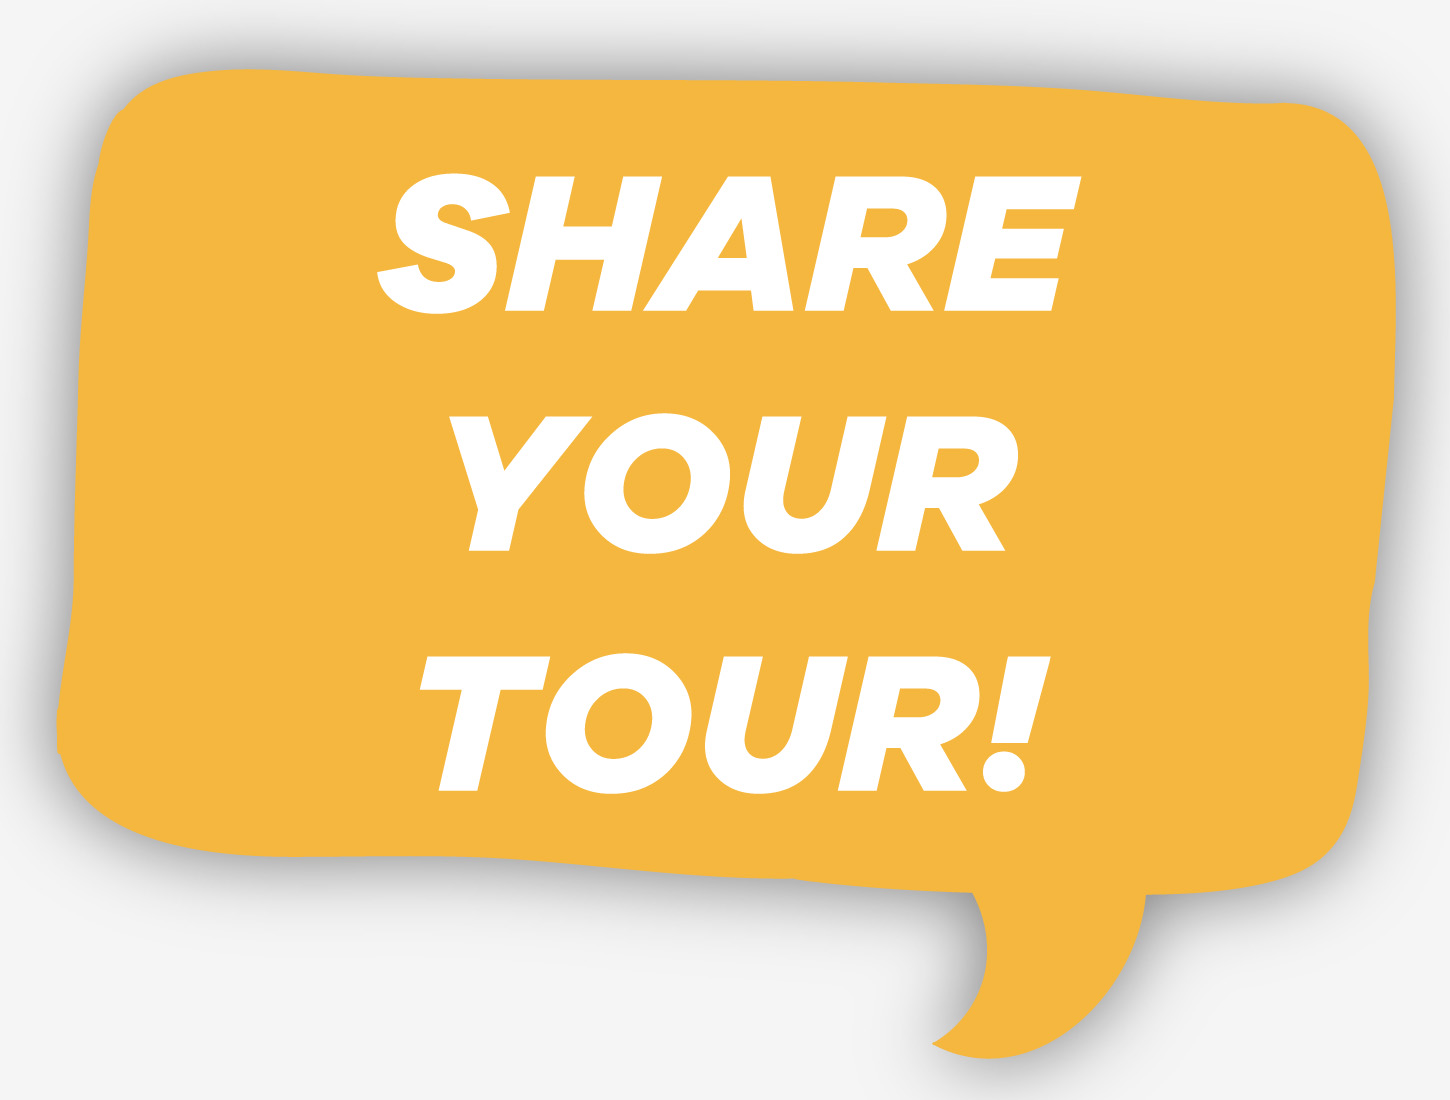 Share your tour